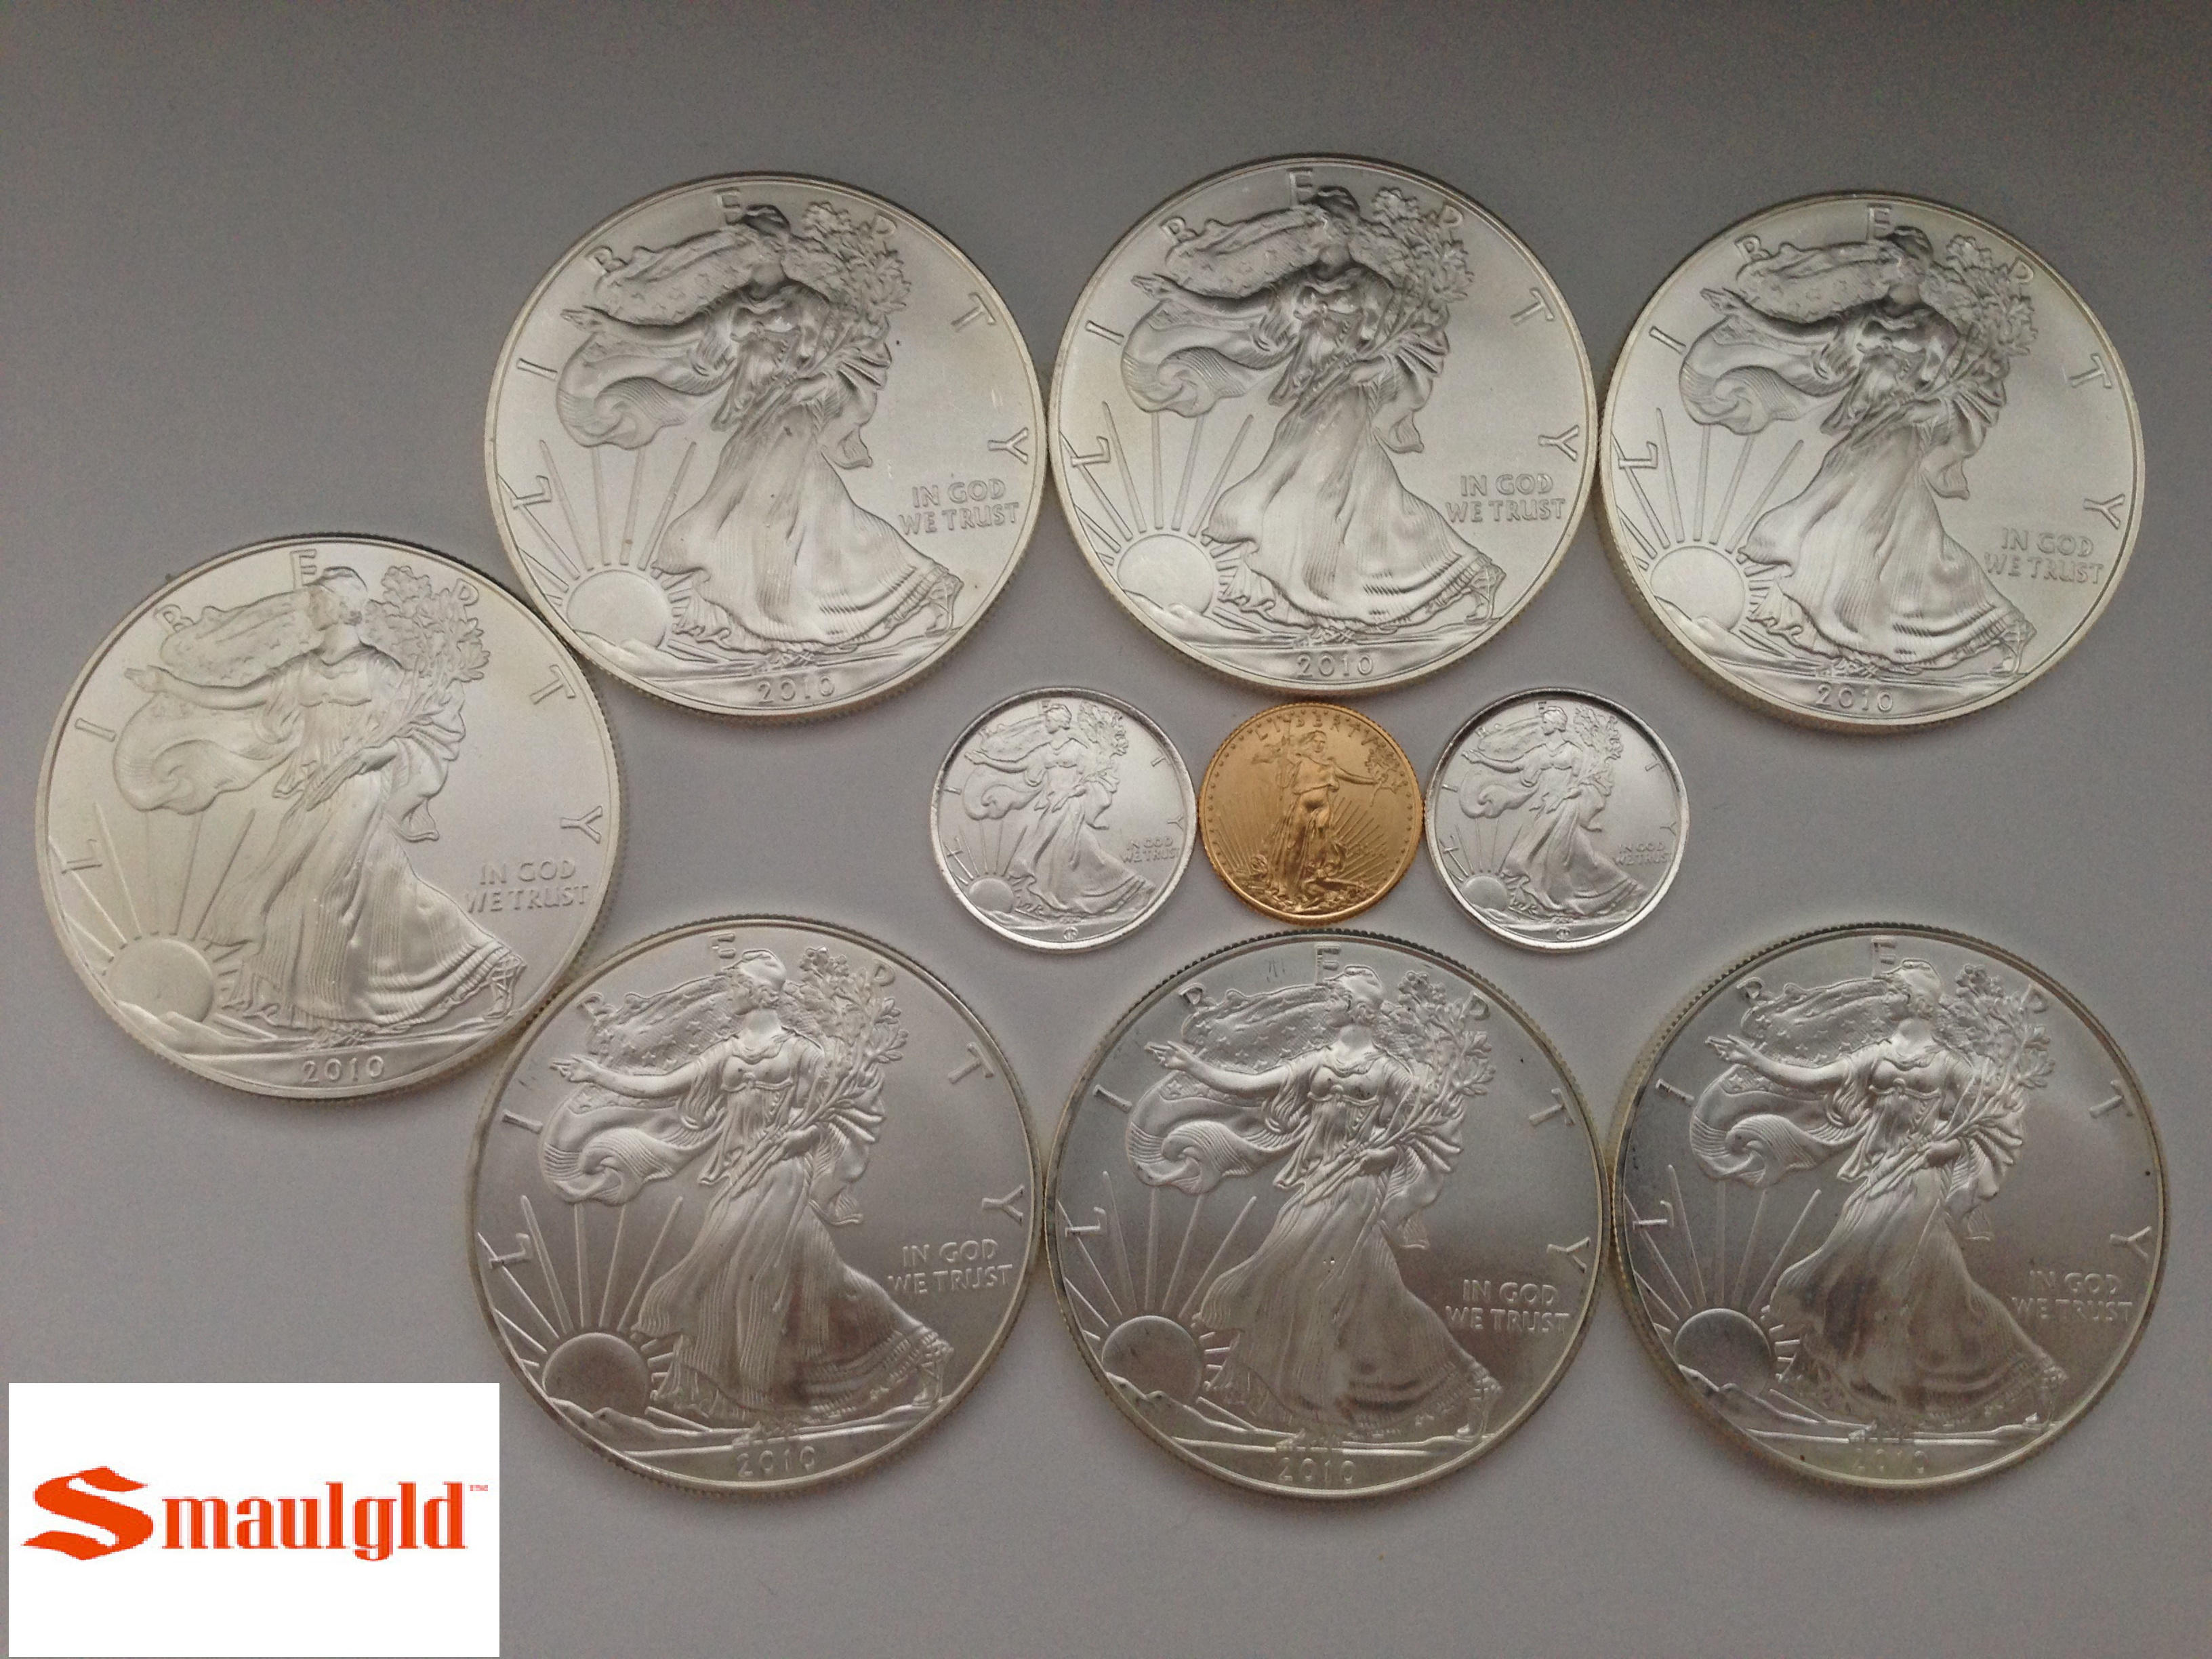 One Tenth Ounce American Gold Eagle Coin Sales Surge